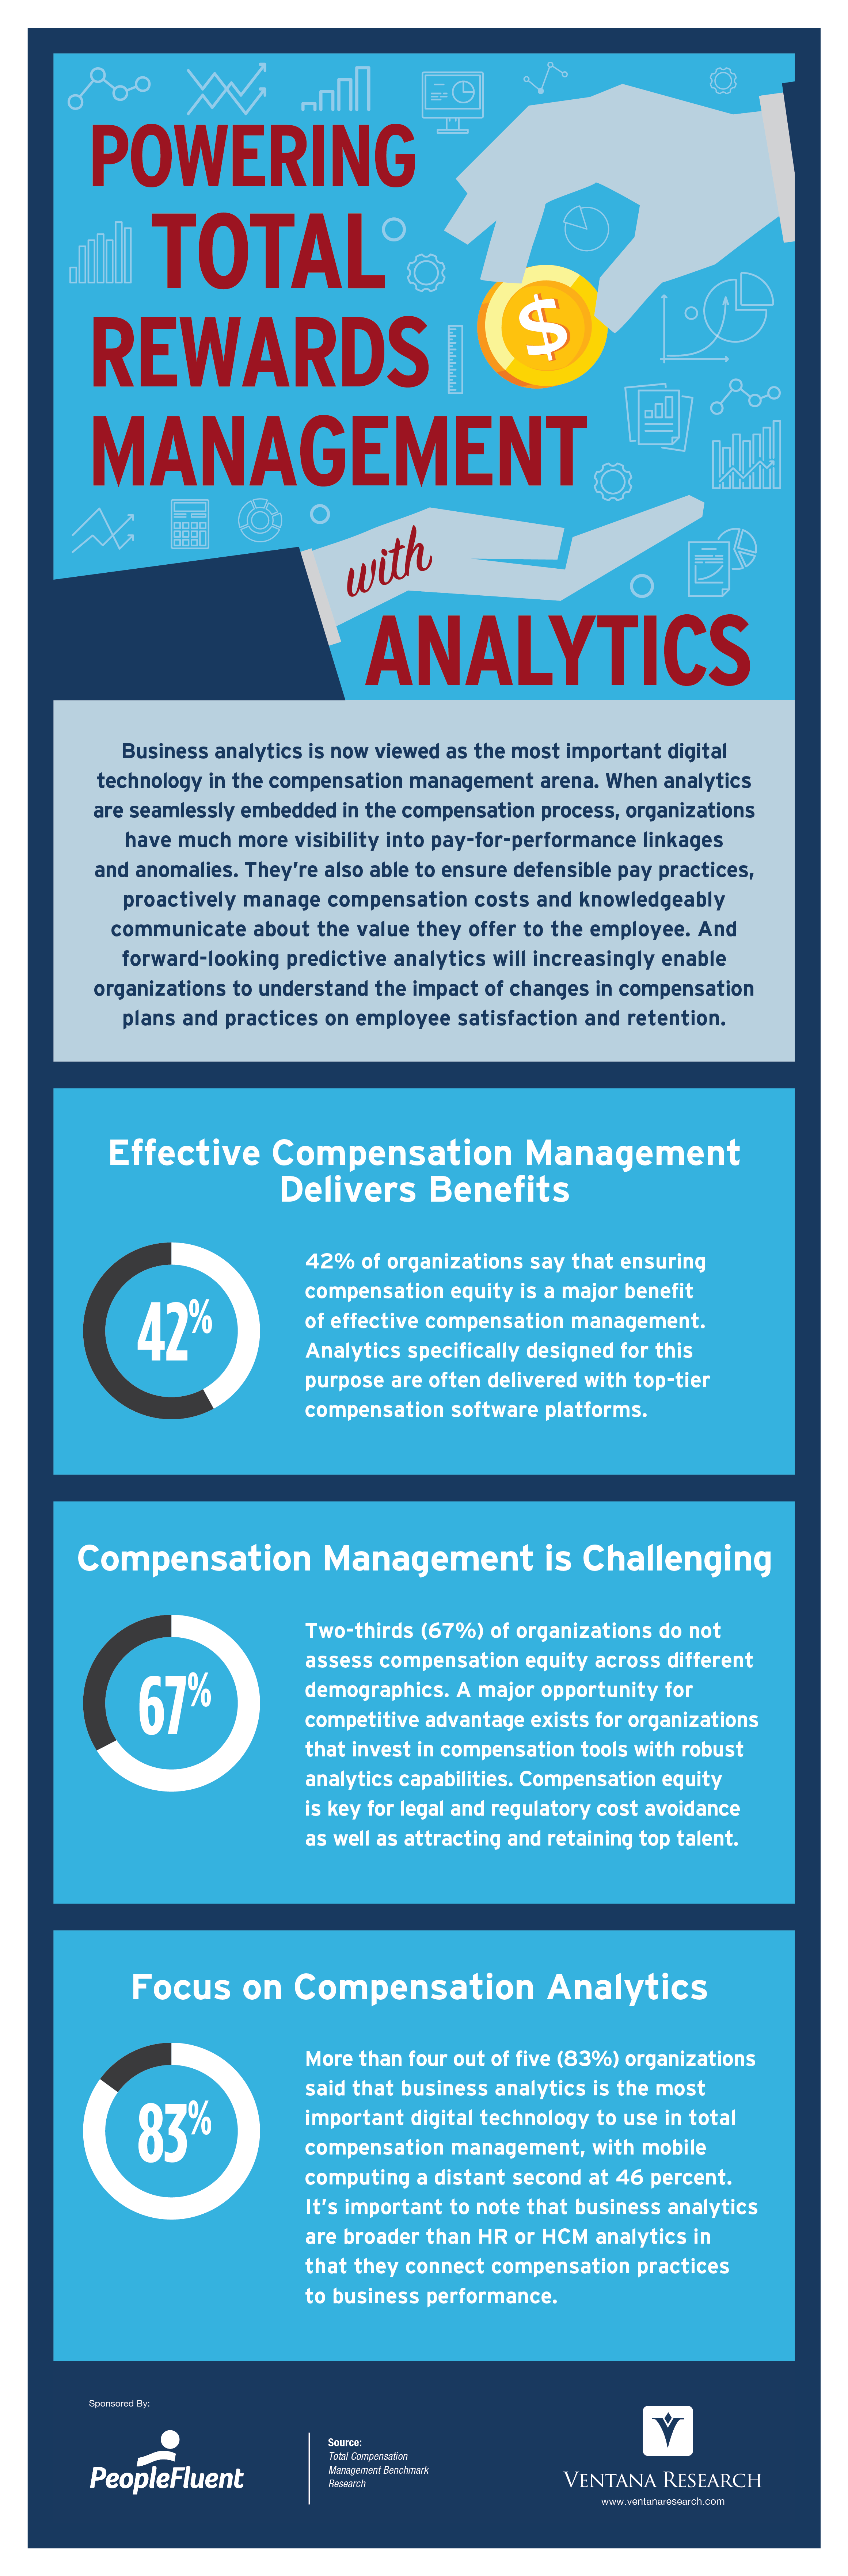 Ventana_Research_Infographics_Compensation_Analytics_(PeopleFluent)_2019.png